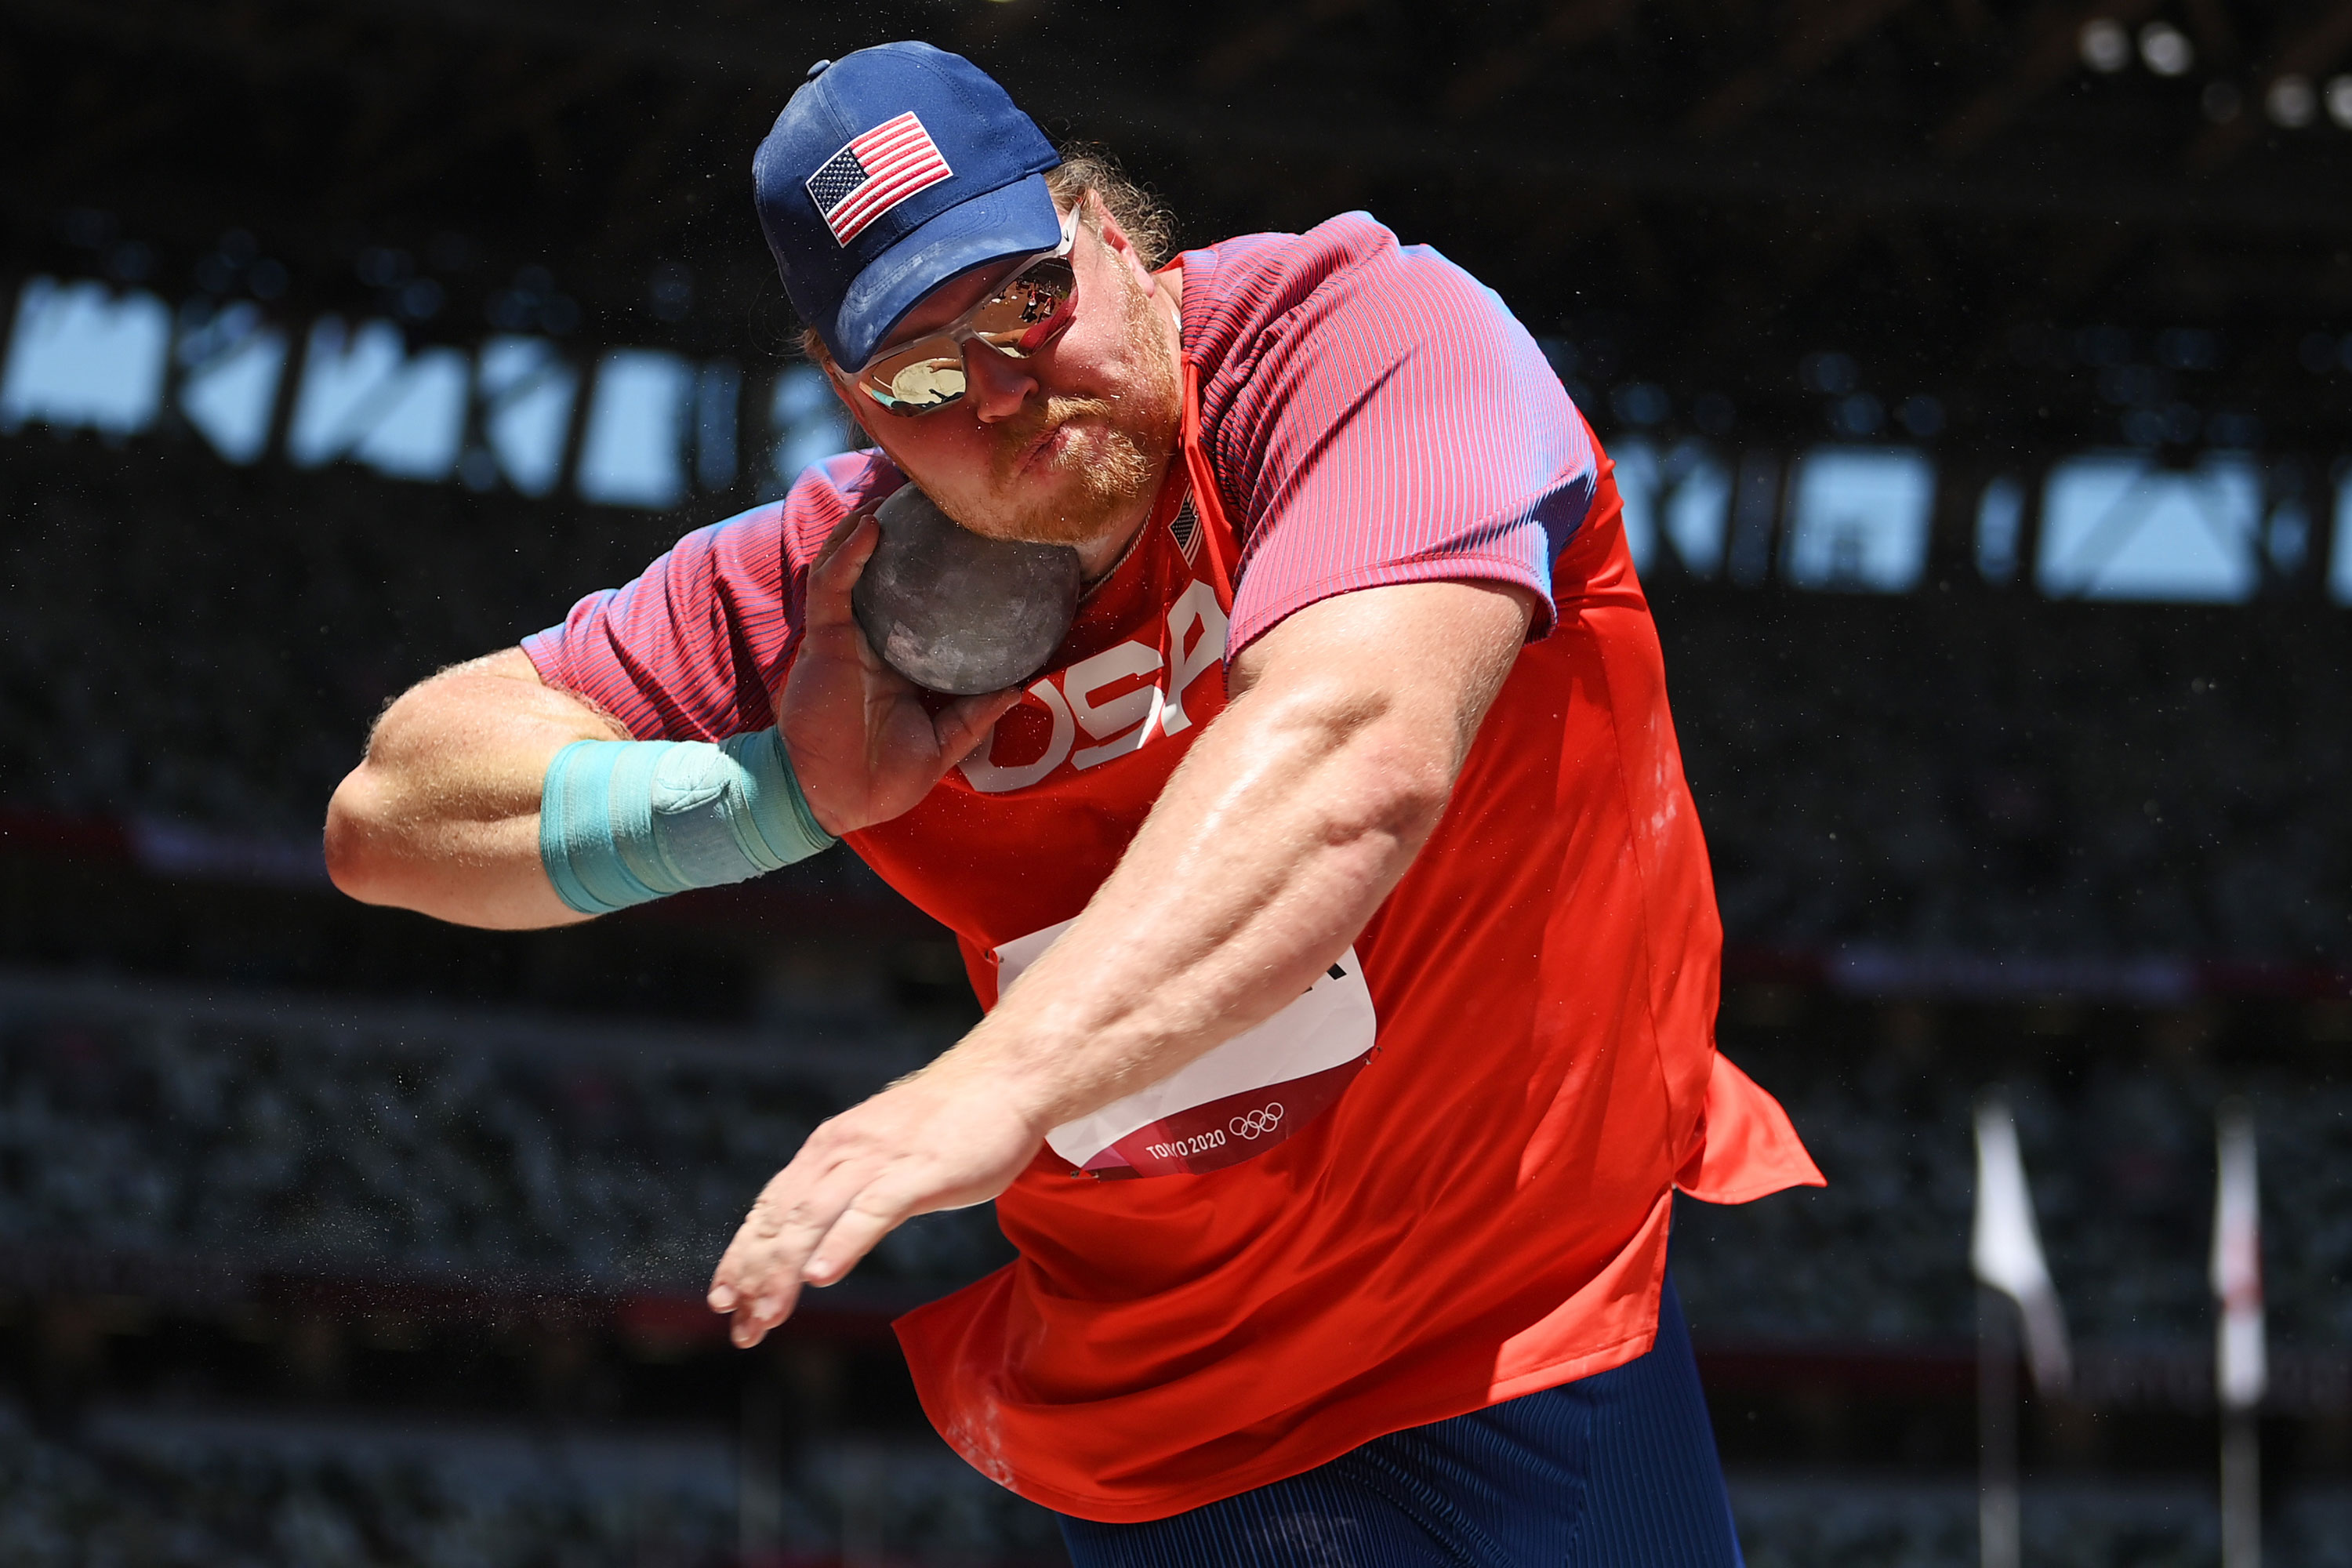 American Ryan Crouser competes in the shot put final on August 5.